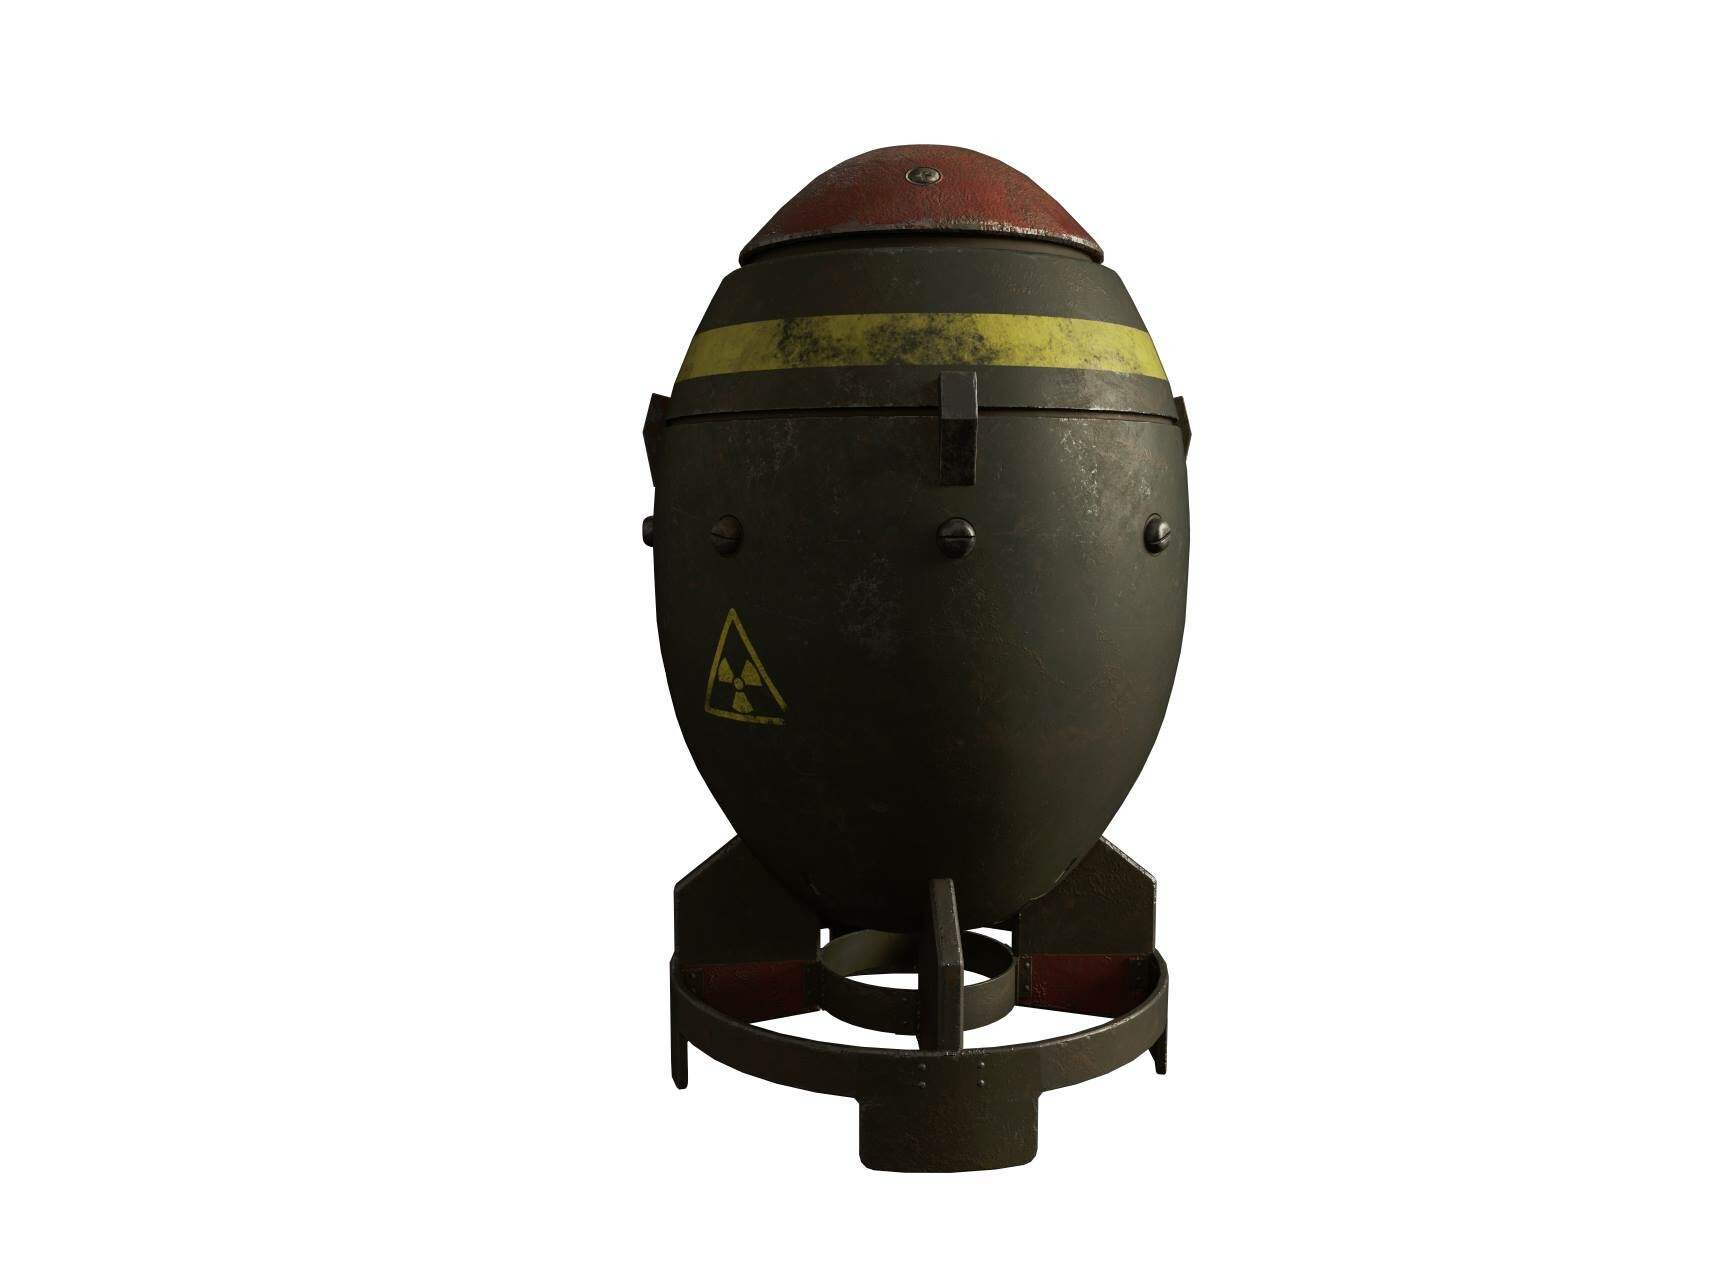 March 2019: Based on Fallout's mini nuke for the Fatman.